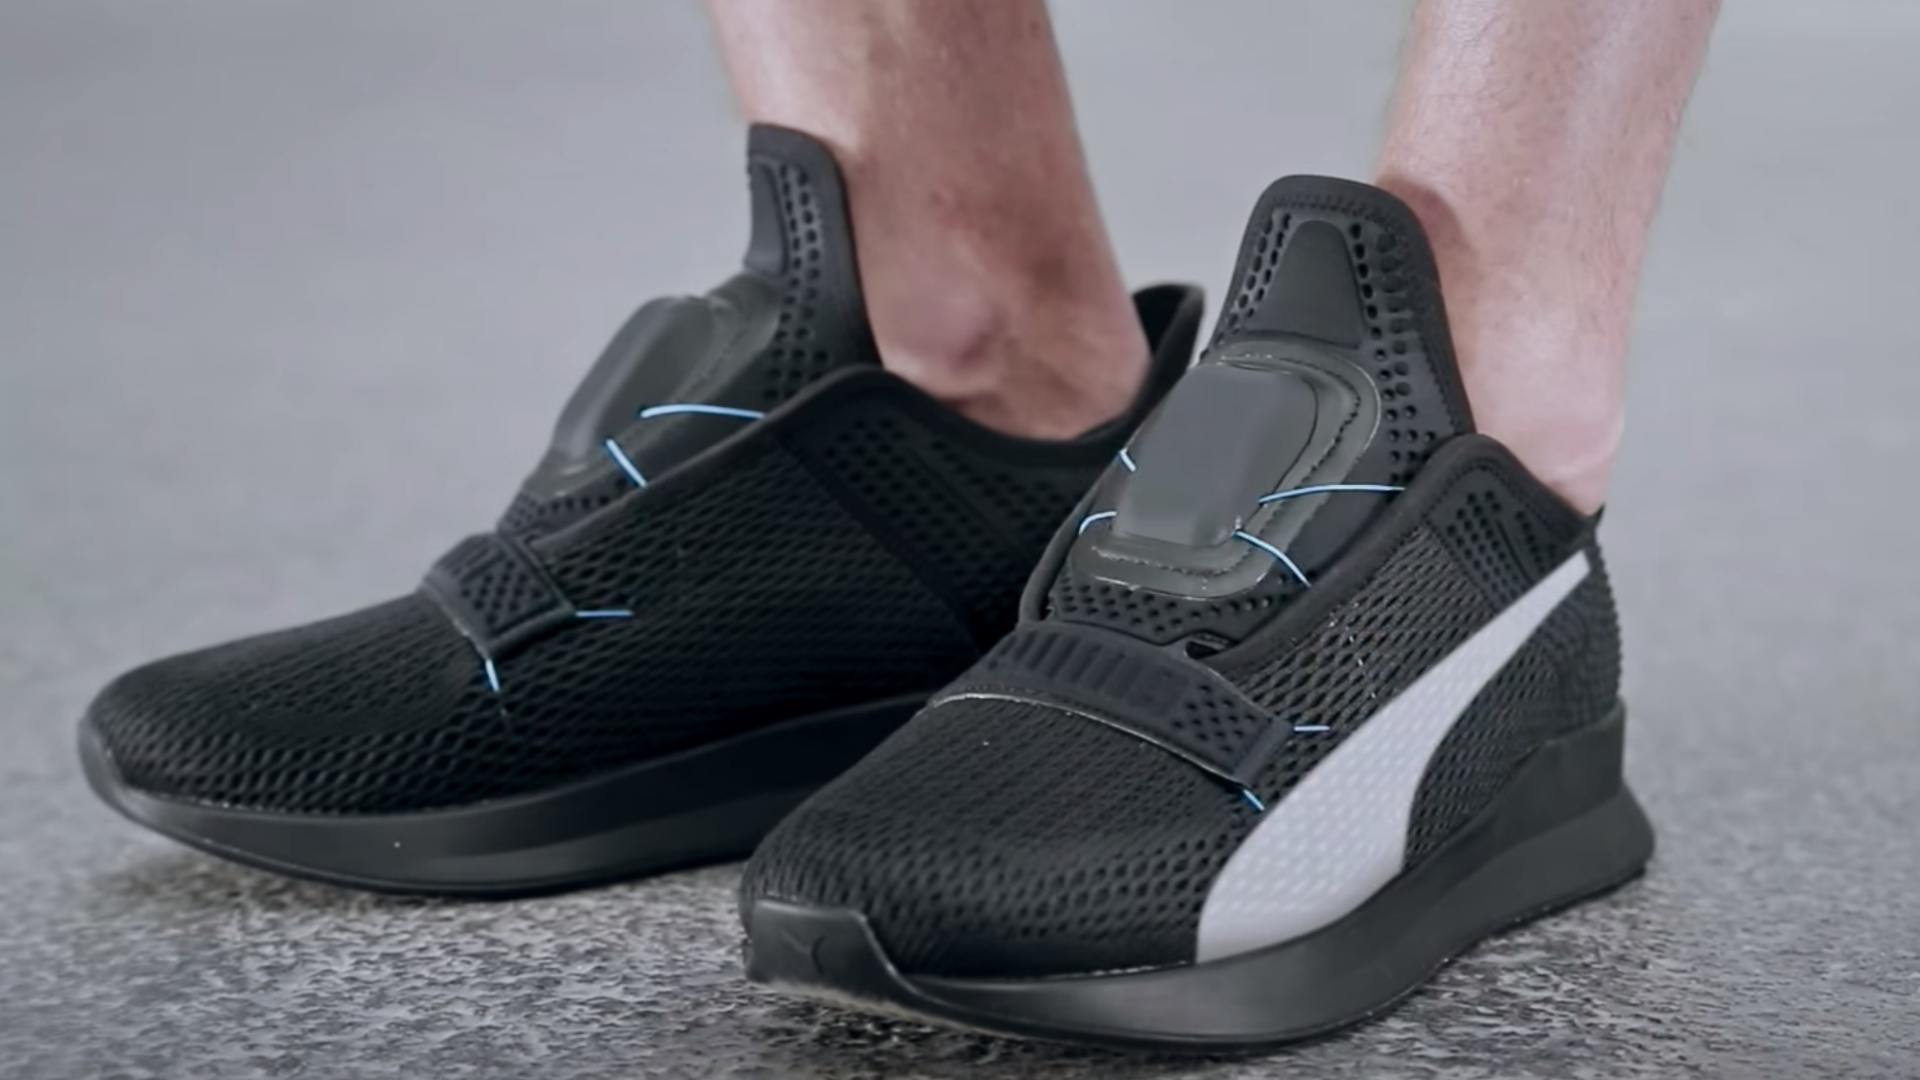 Puma enters self-lacing shoe game with